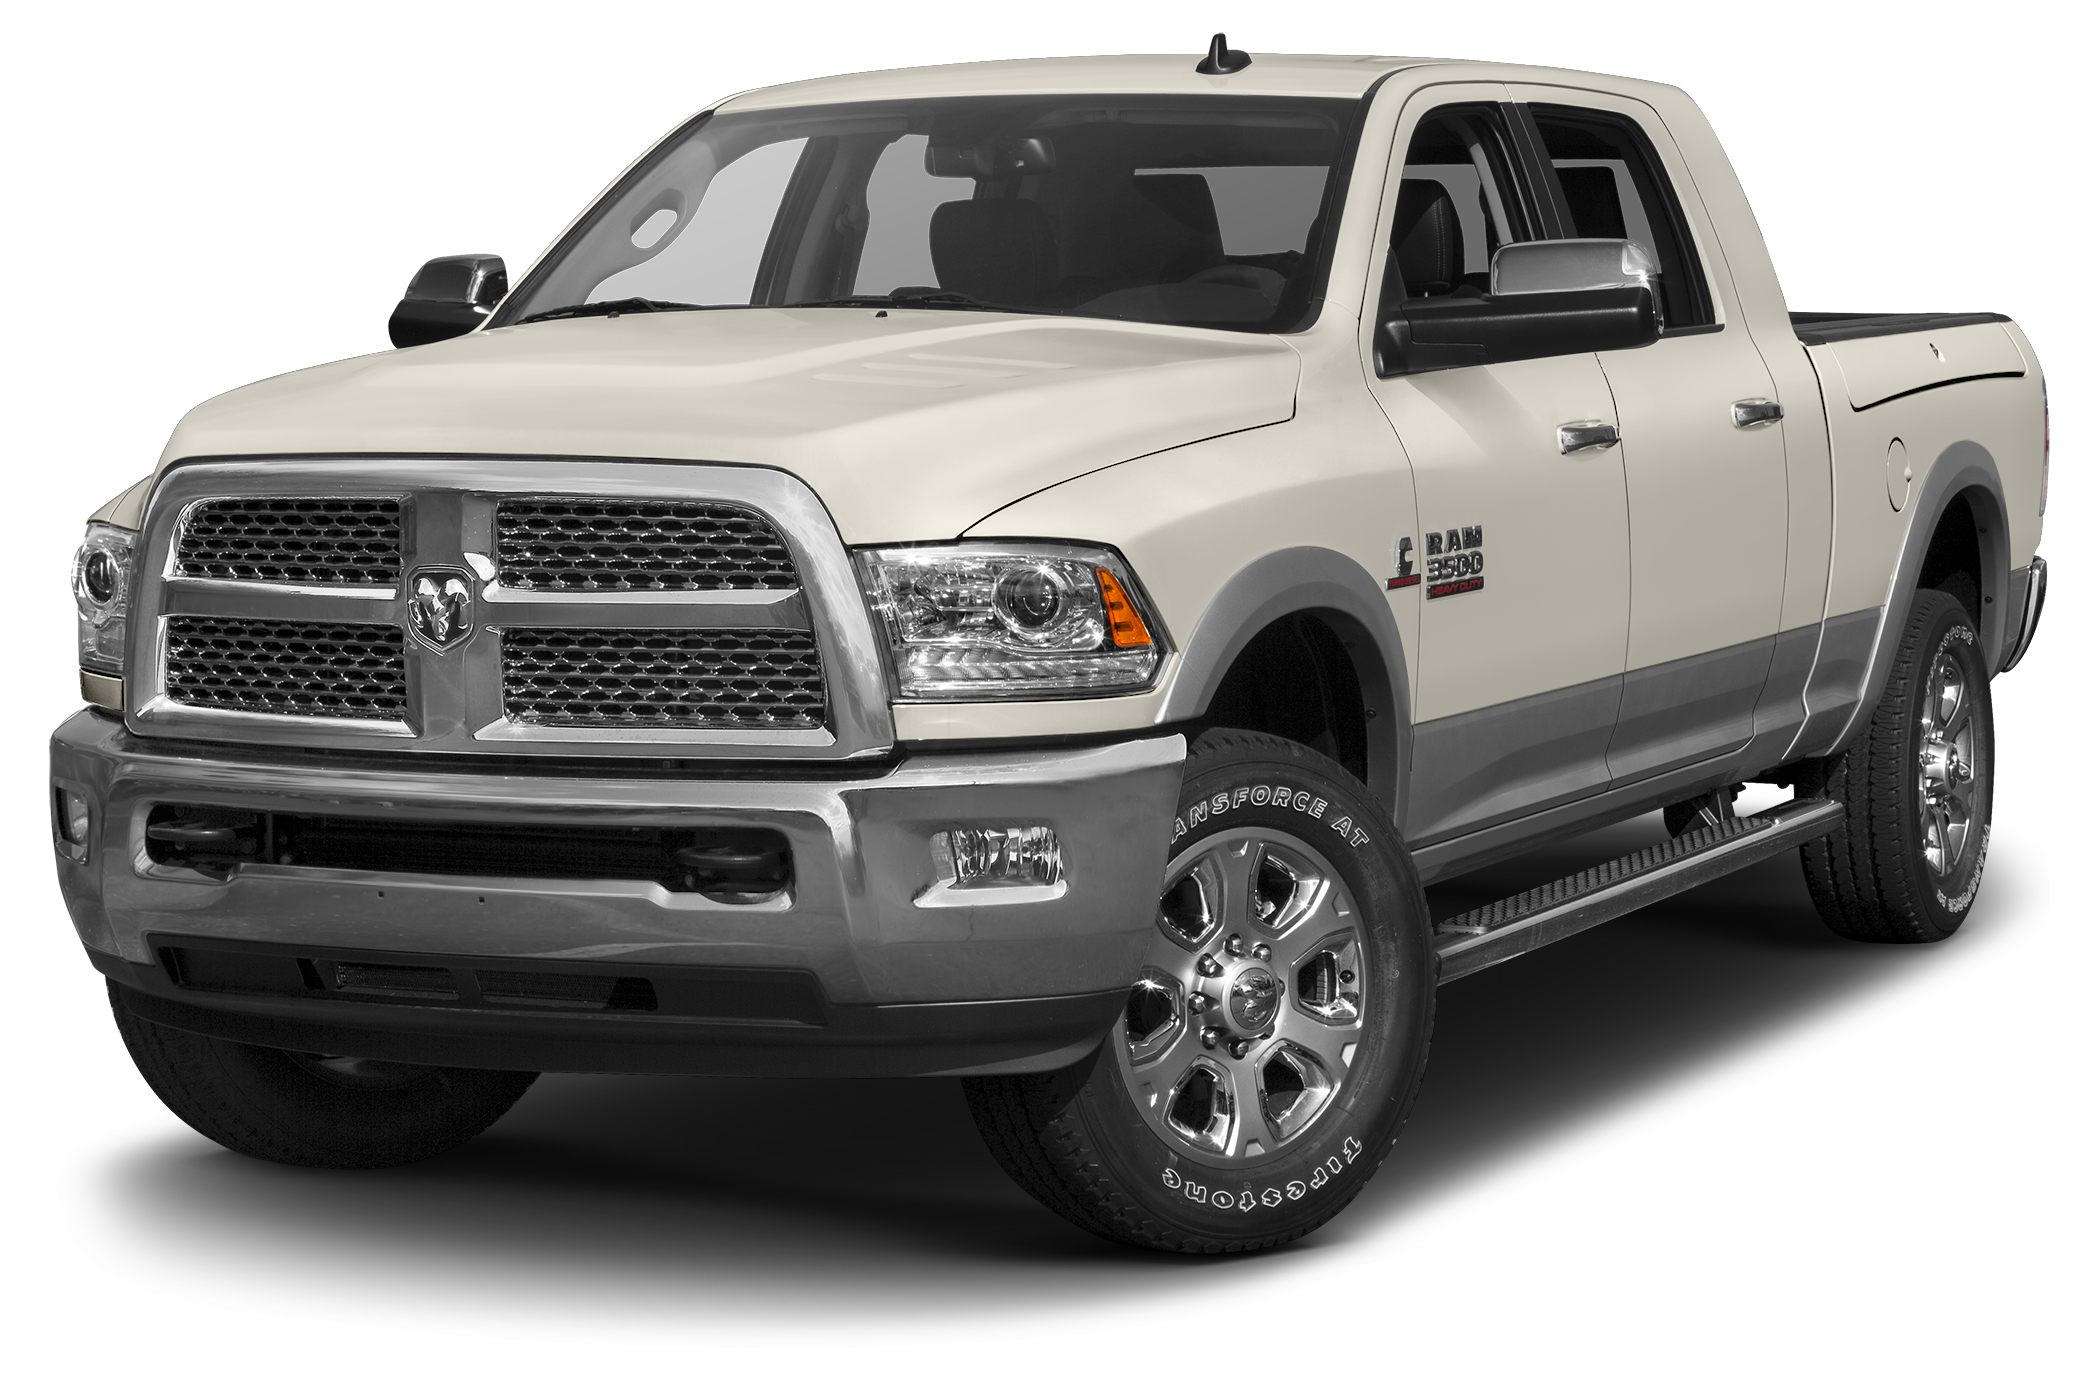 2016 RAM 3500 Laramie 4 Wheel Drive4X44WD Set down the mouse because this amazing Truck is